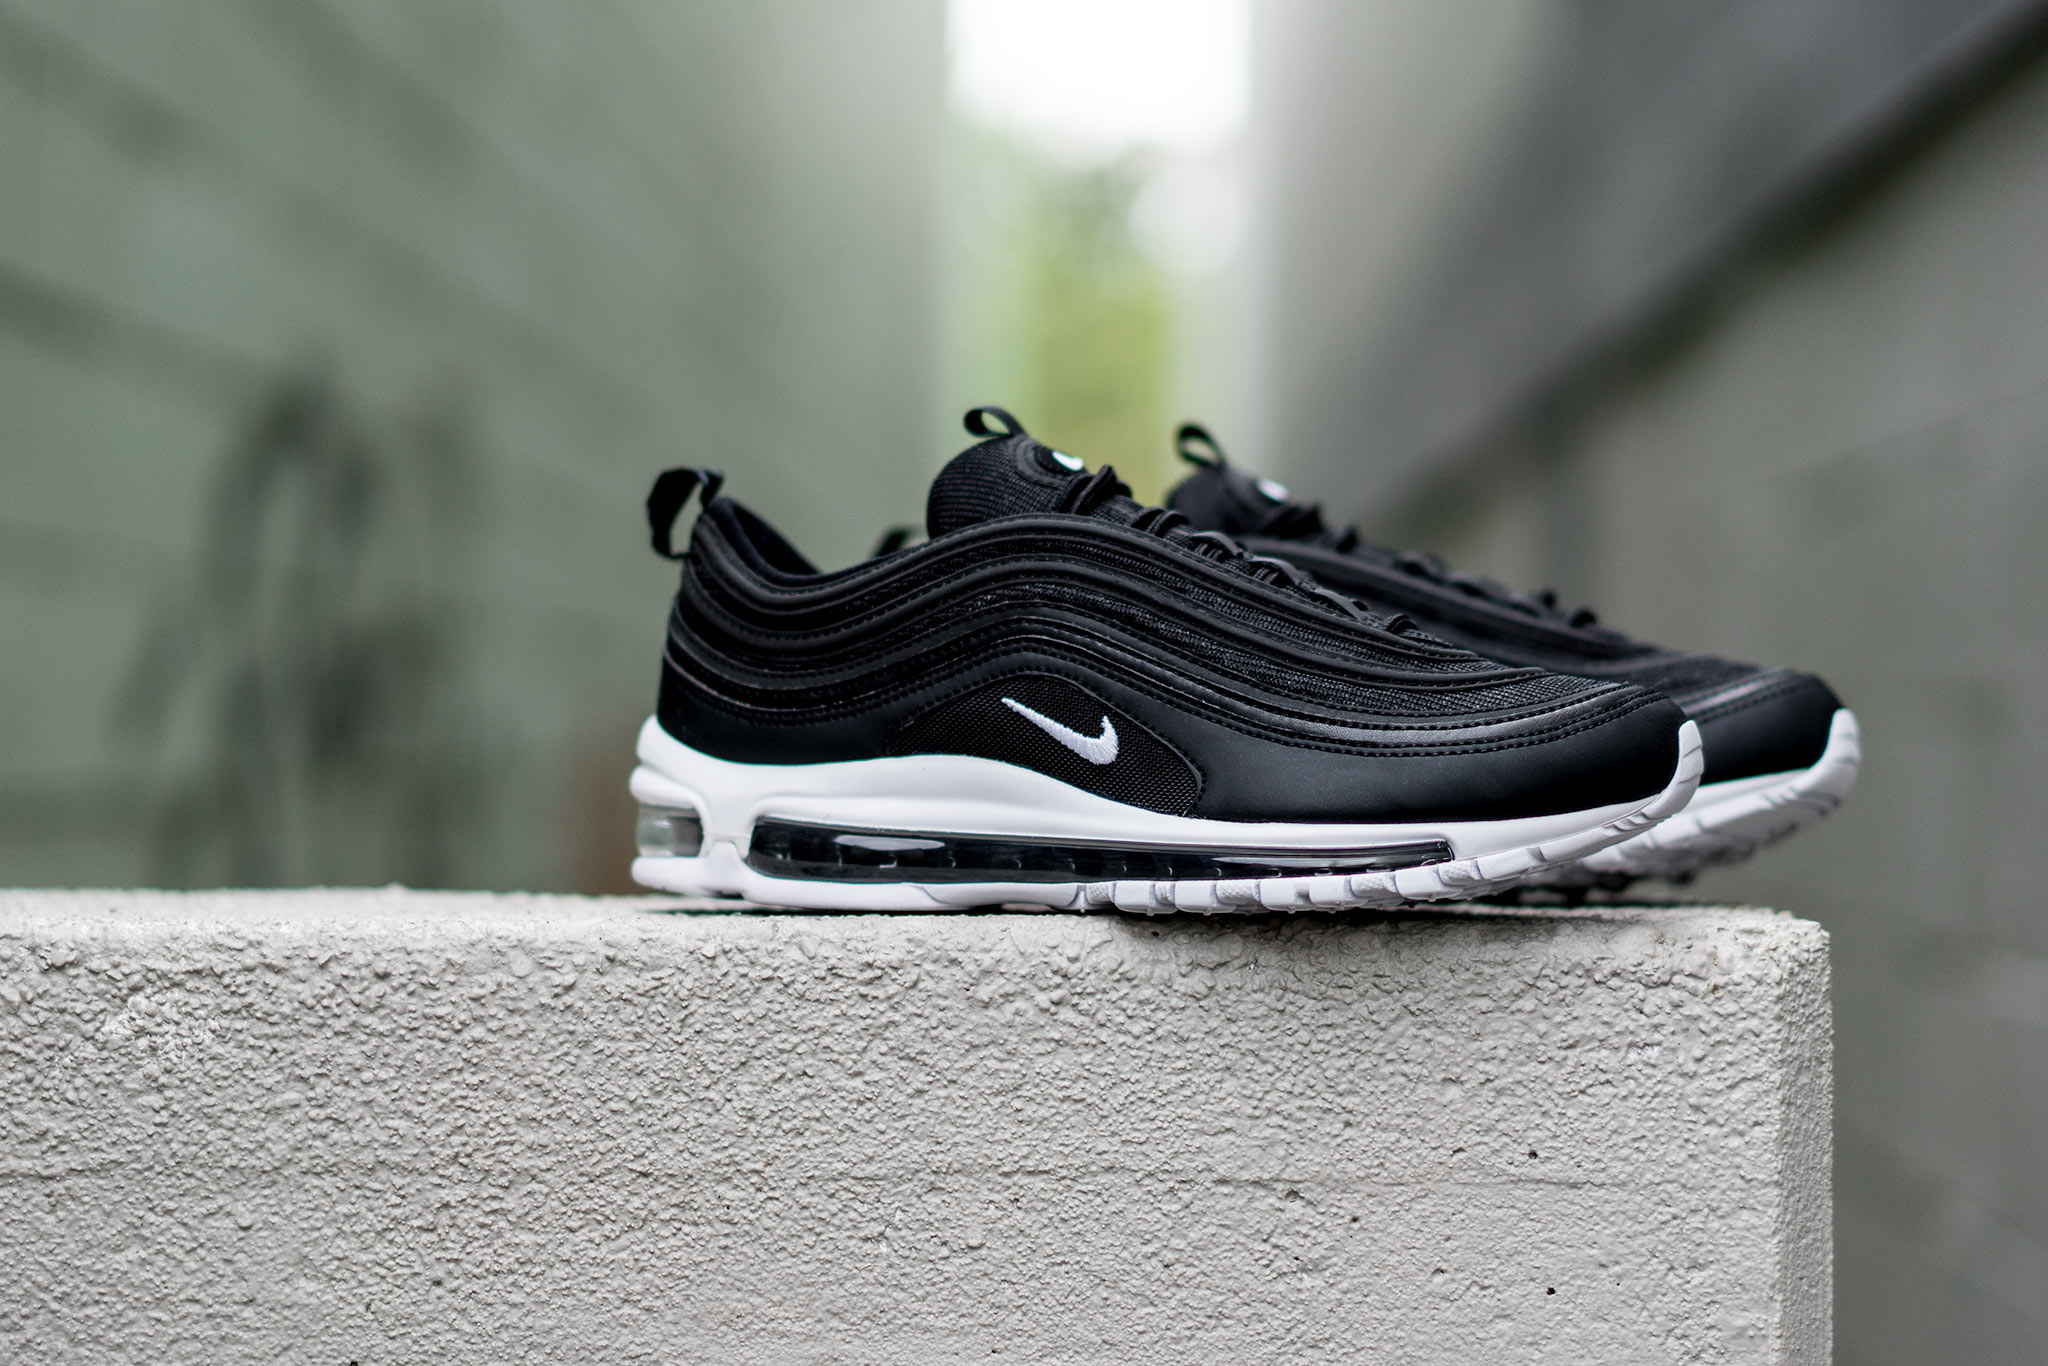 huge discount 4855e cd47c Nike Air Max 97 OG Black/White | Release Date: 08.01.17 | HAVEN